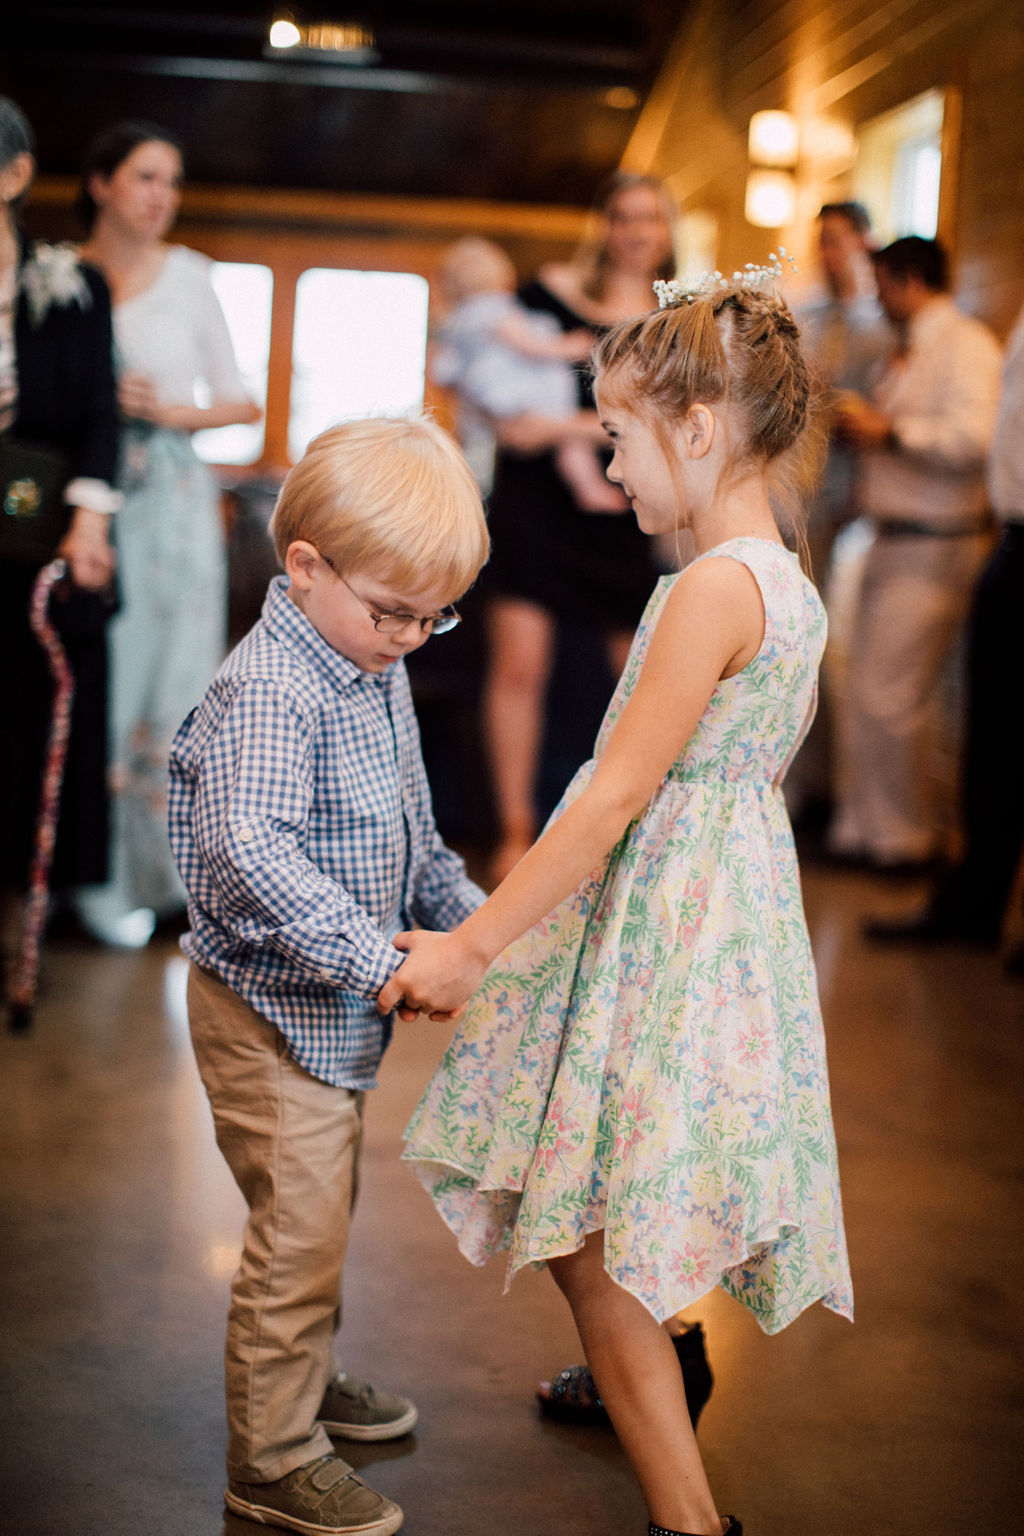 """How cute is this moment? You can just hear all the """"awes"""" in the background. pc: Katelyn King Photography"""